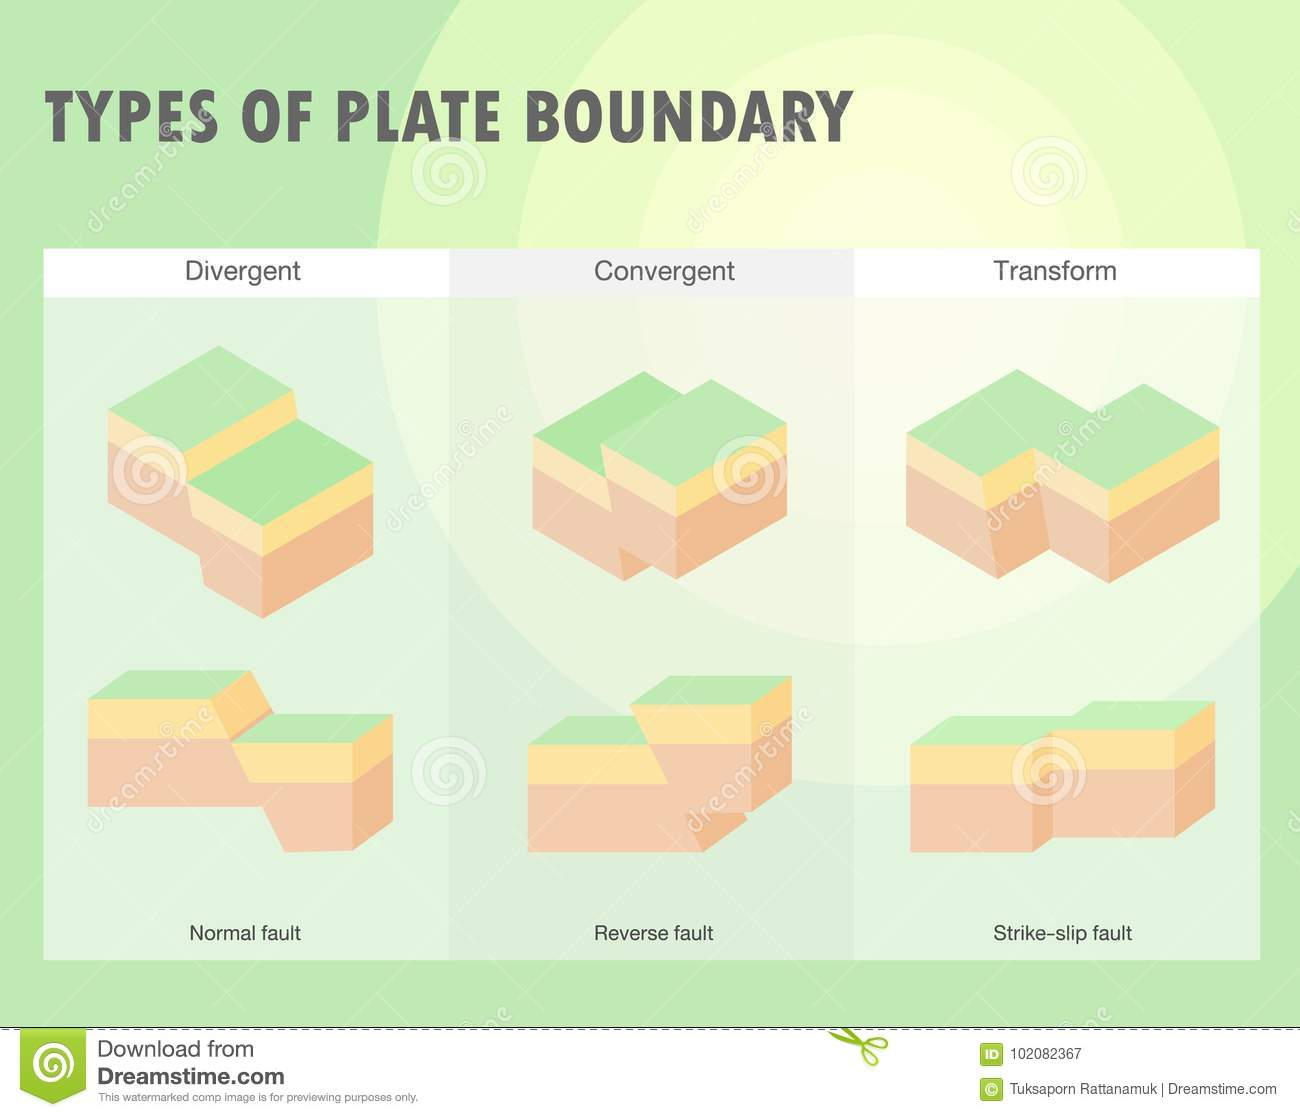 Types of plate boundary earthquake stock vector illustration of types of plate boundary earthquake continental diagram pooptronica Image collections